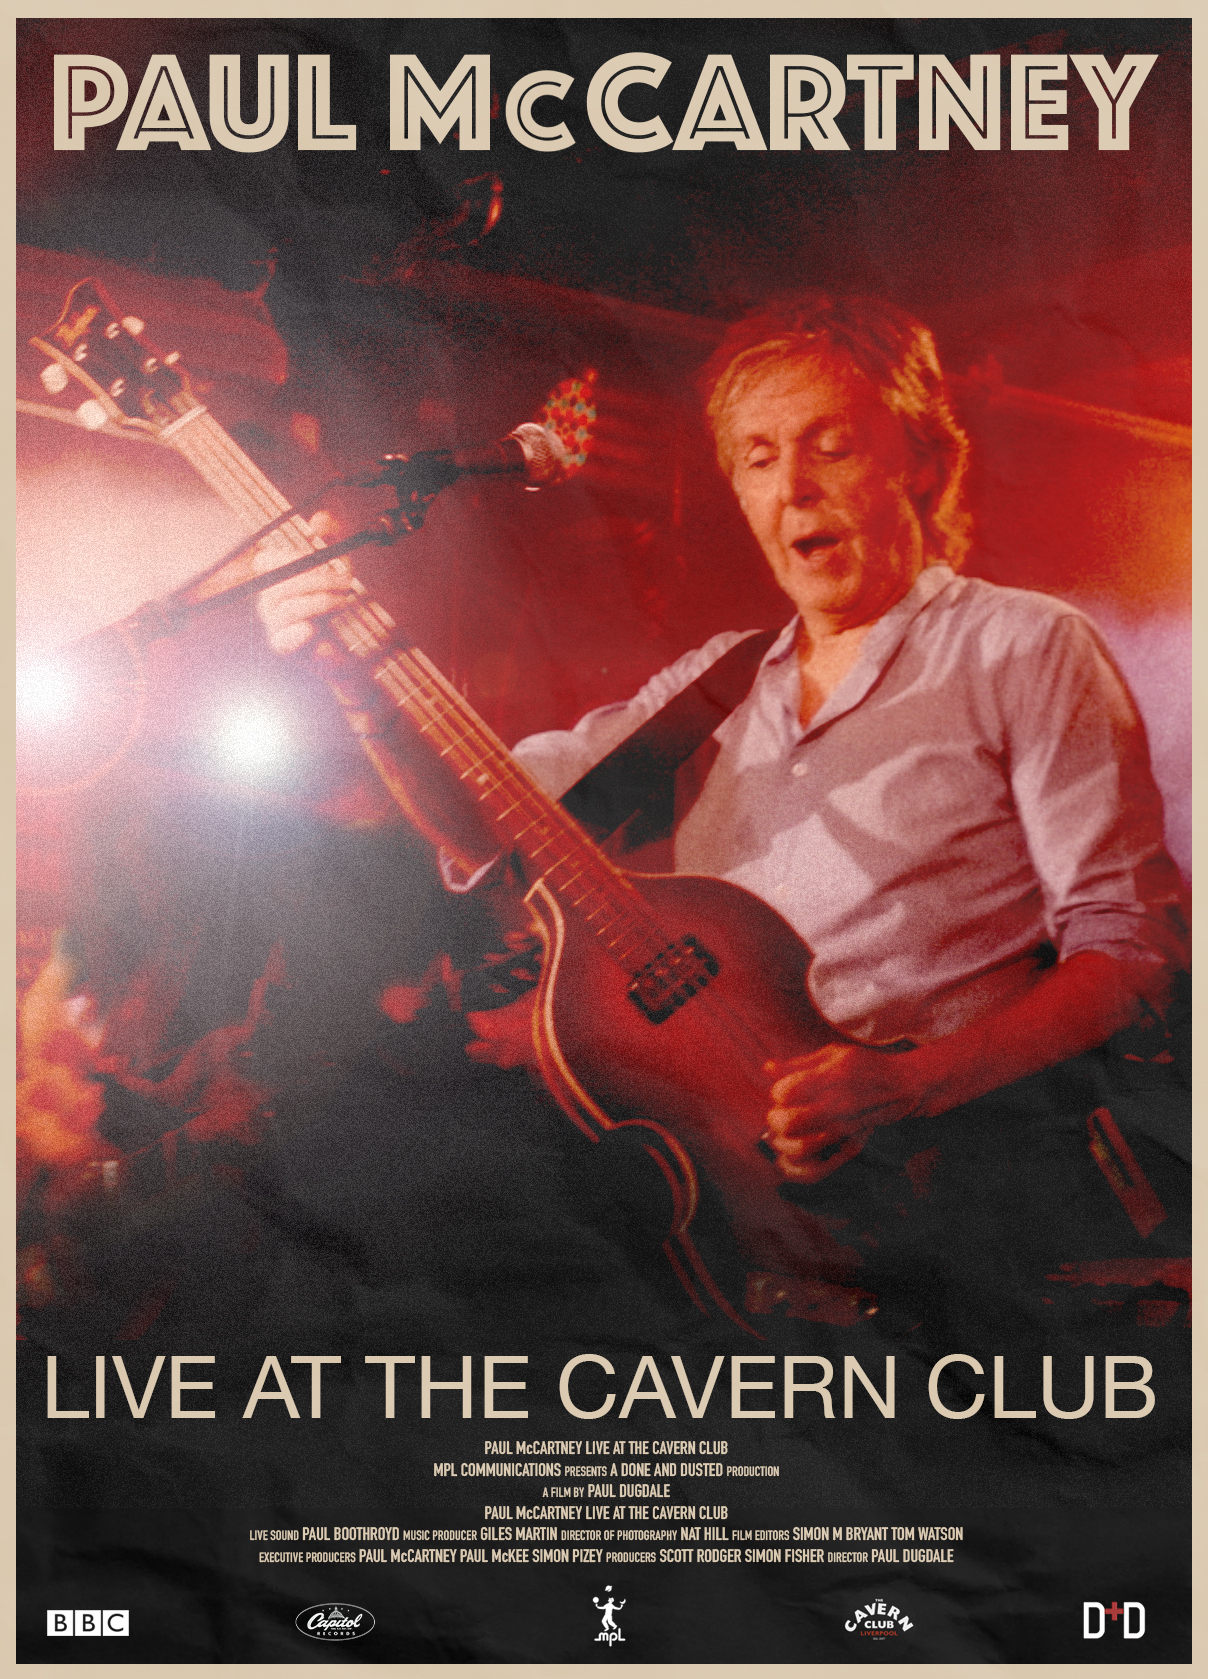 Paul McCartney Live at... The Cavern Club hd on soap2day